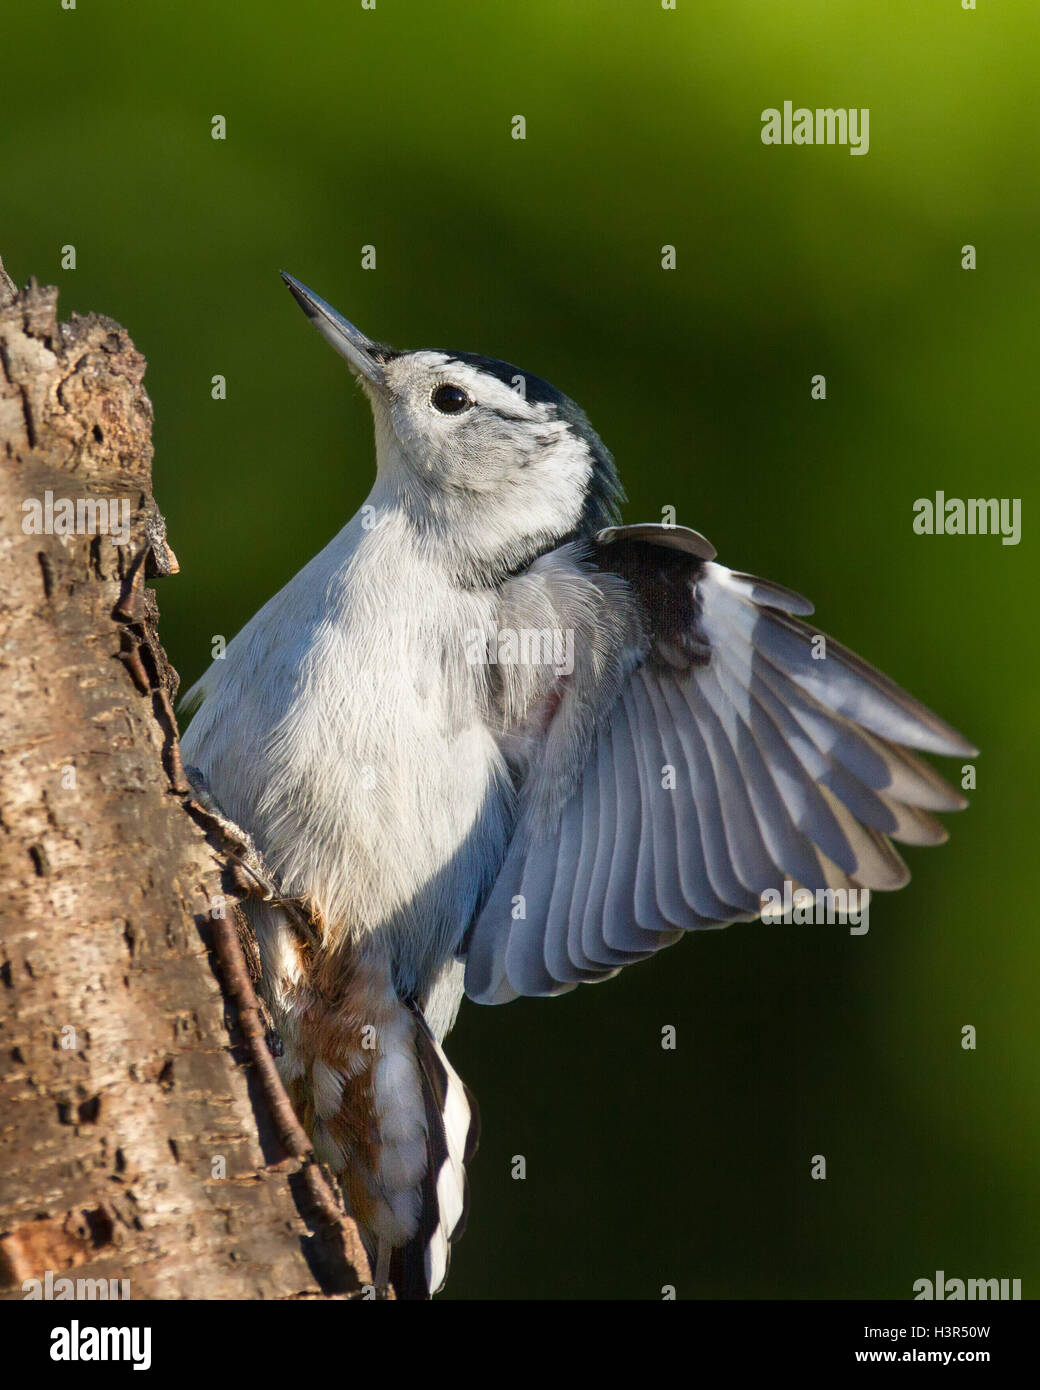 White-breasted nuthatch performing a threat display - Stock Image